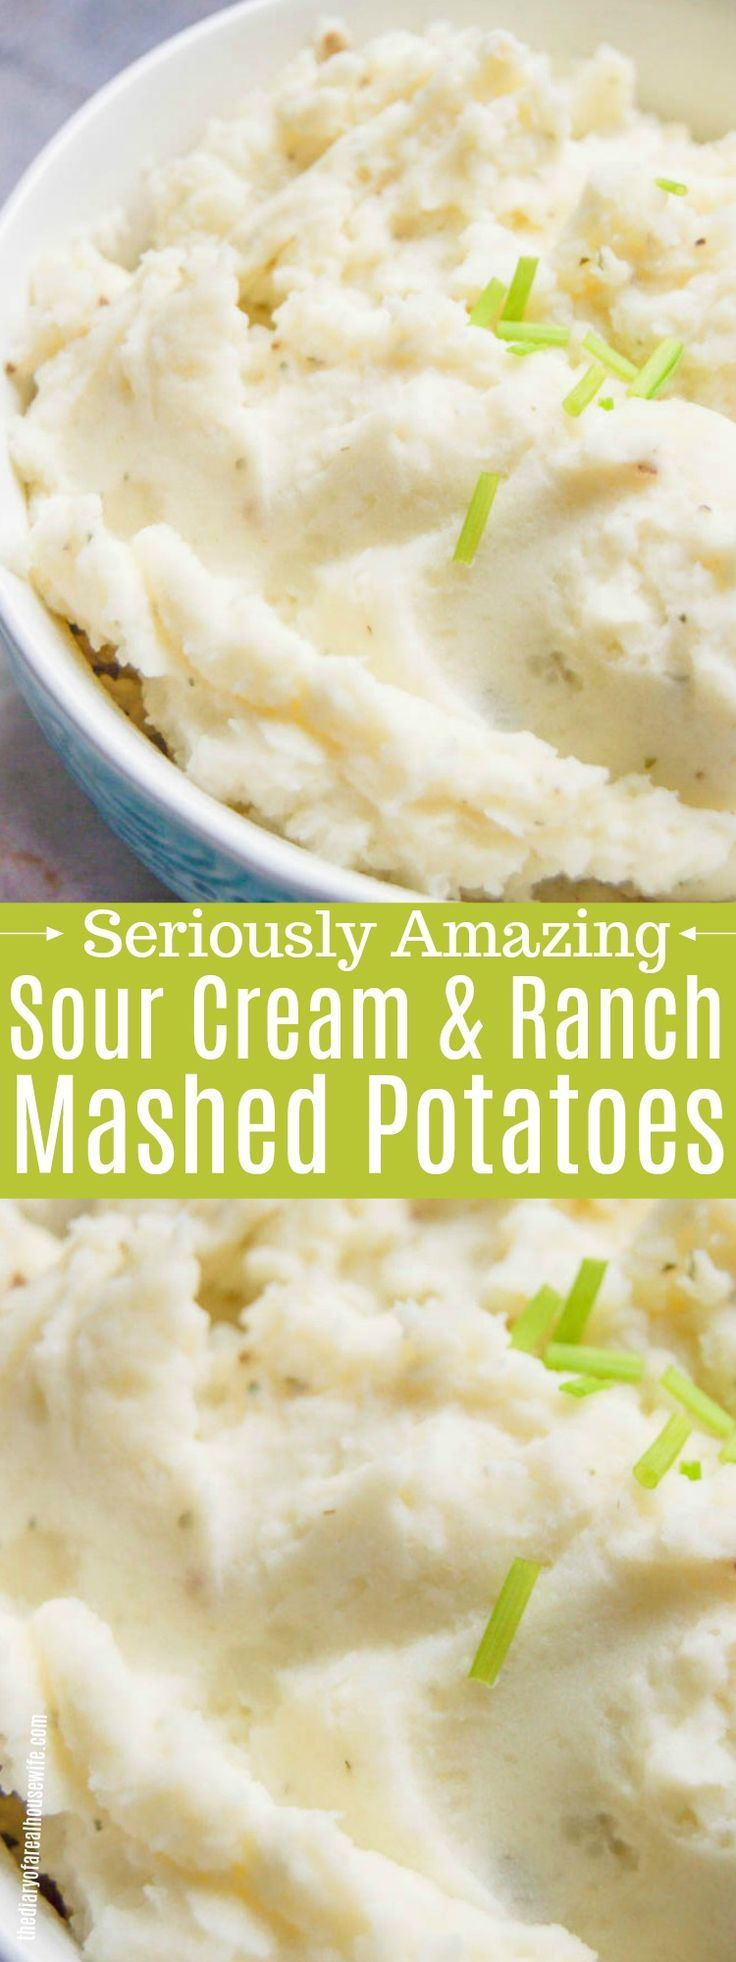 Smooth And Creamy Homemade Sour Cream And Ranch Mashed Potatoes Sidedish Thanksgiving Sour Cream Potatoes Ranch Mashed Potatoes Mashed Potatoes Recipe Easy